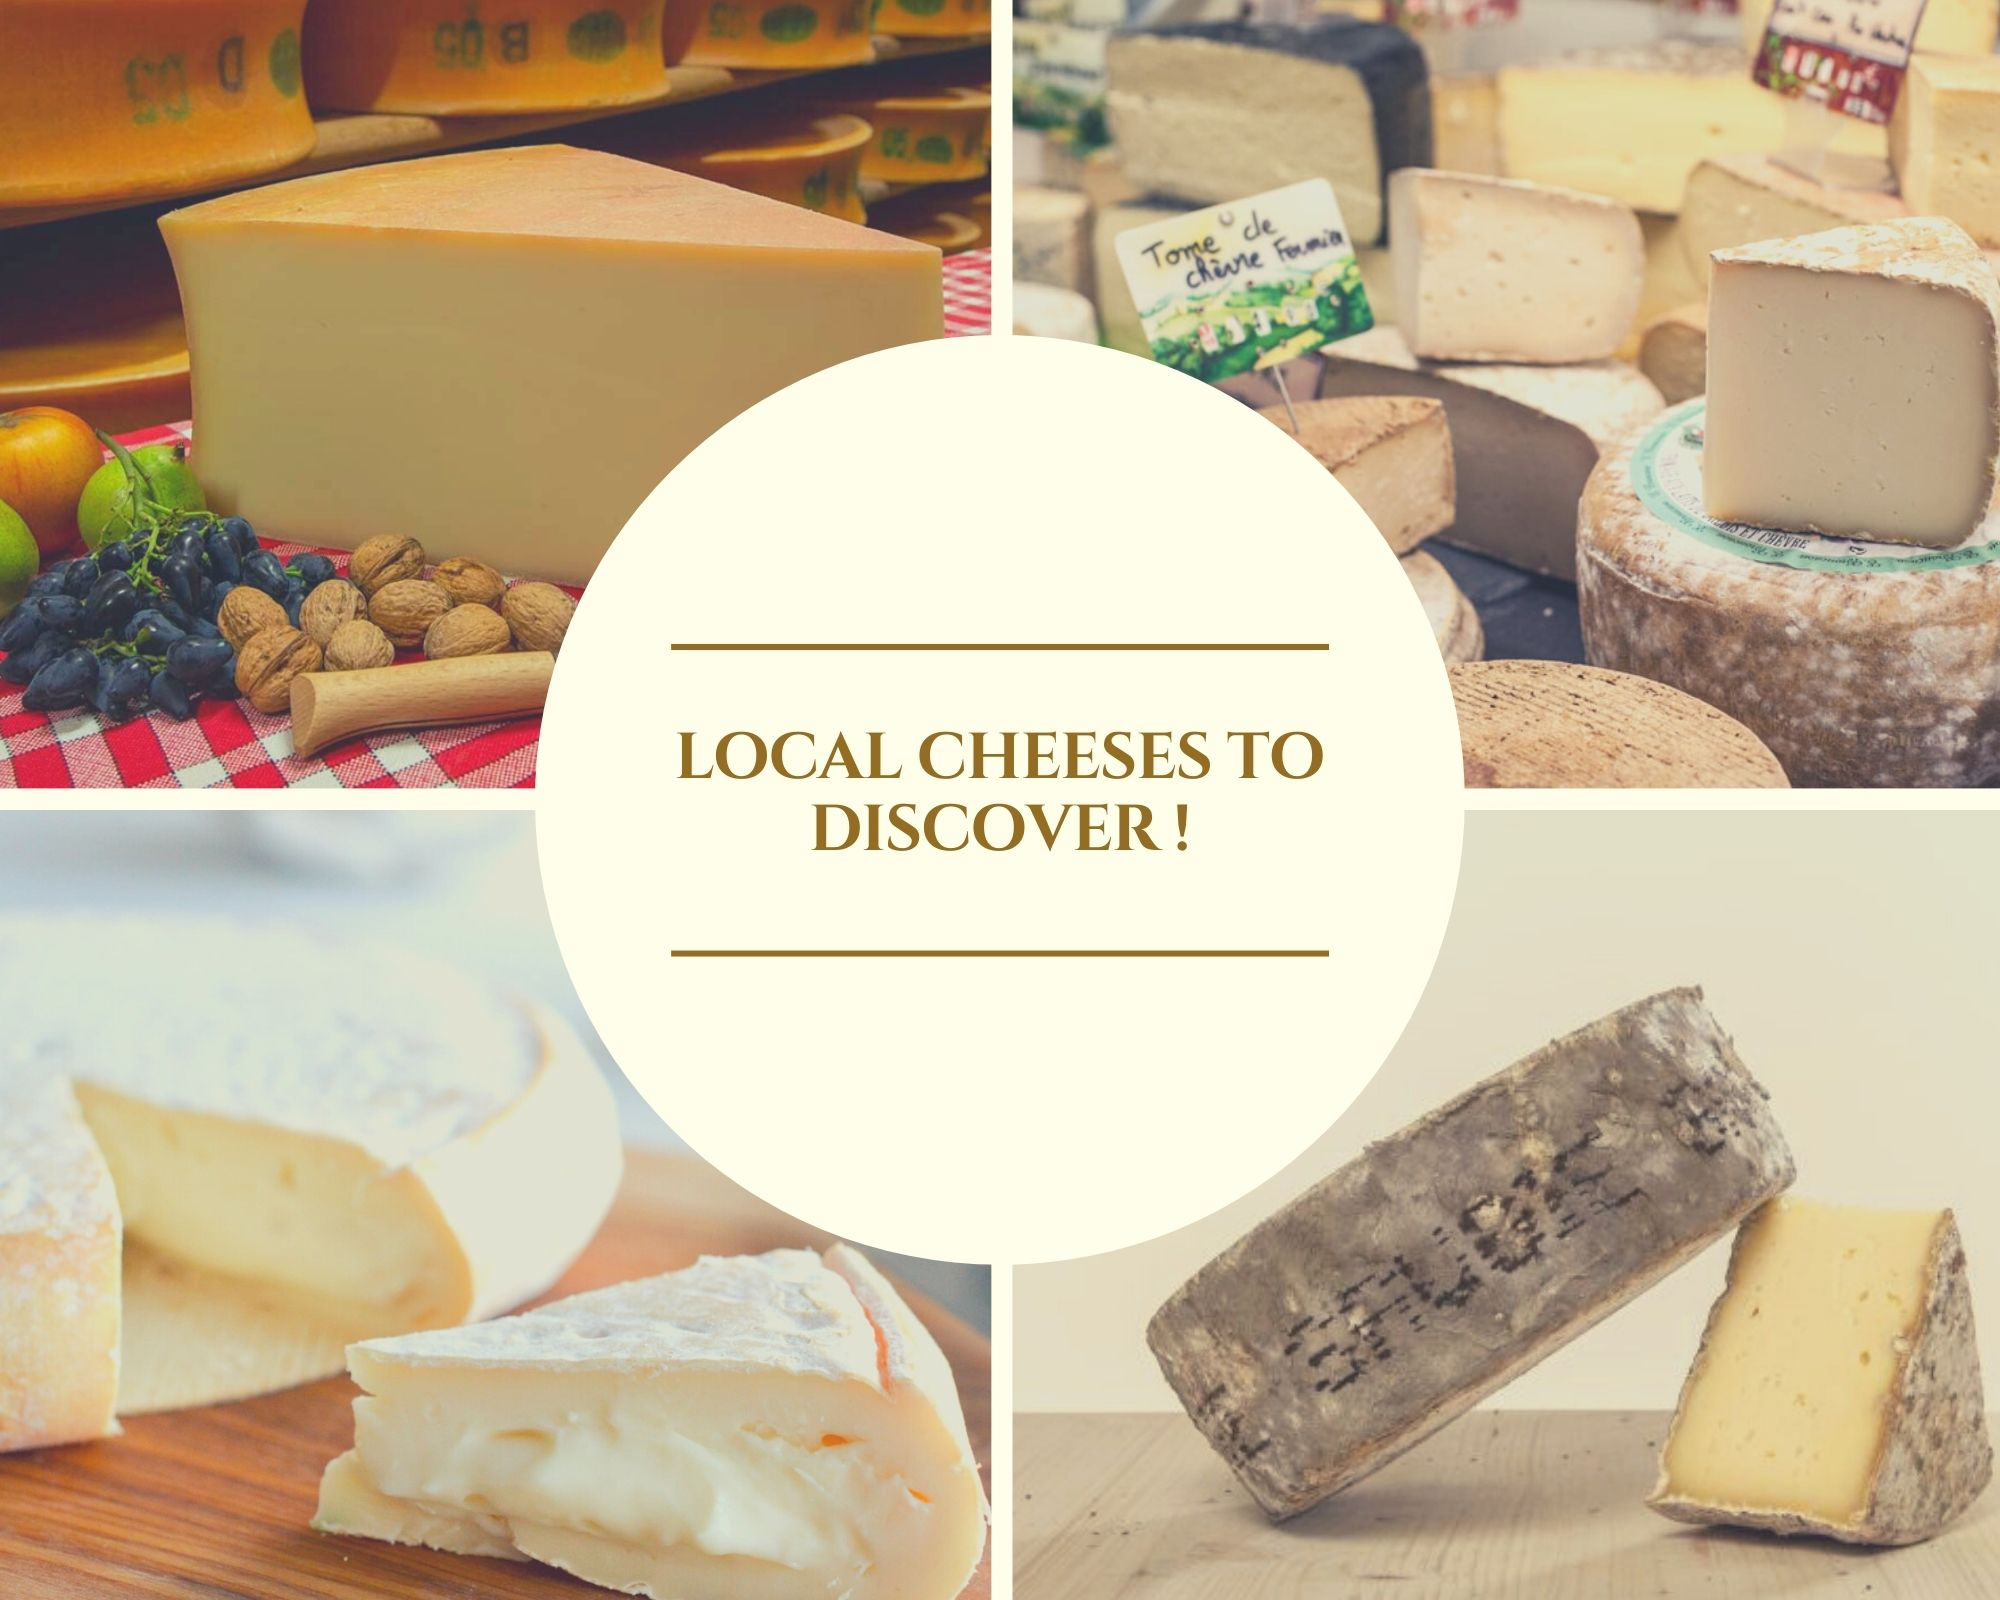 Local cheeses to discover